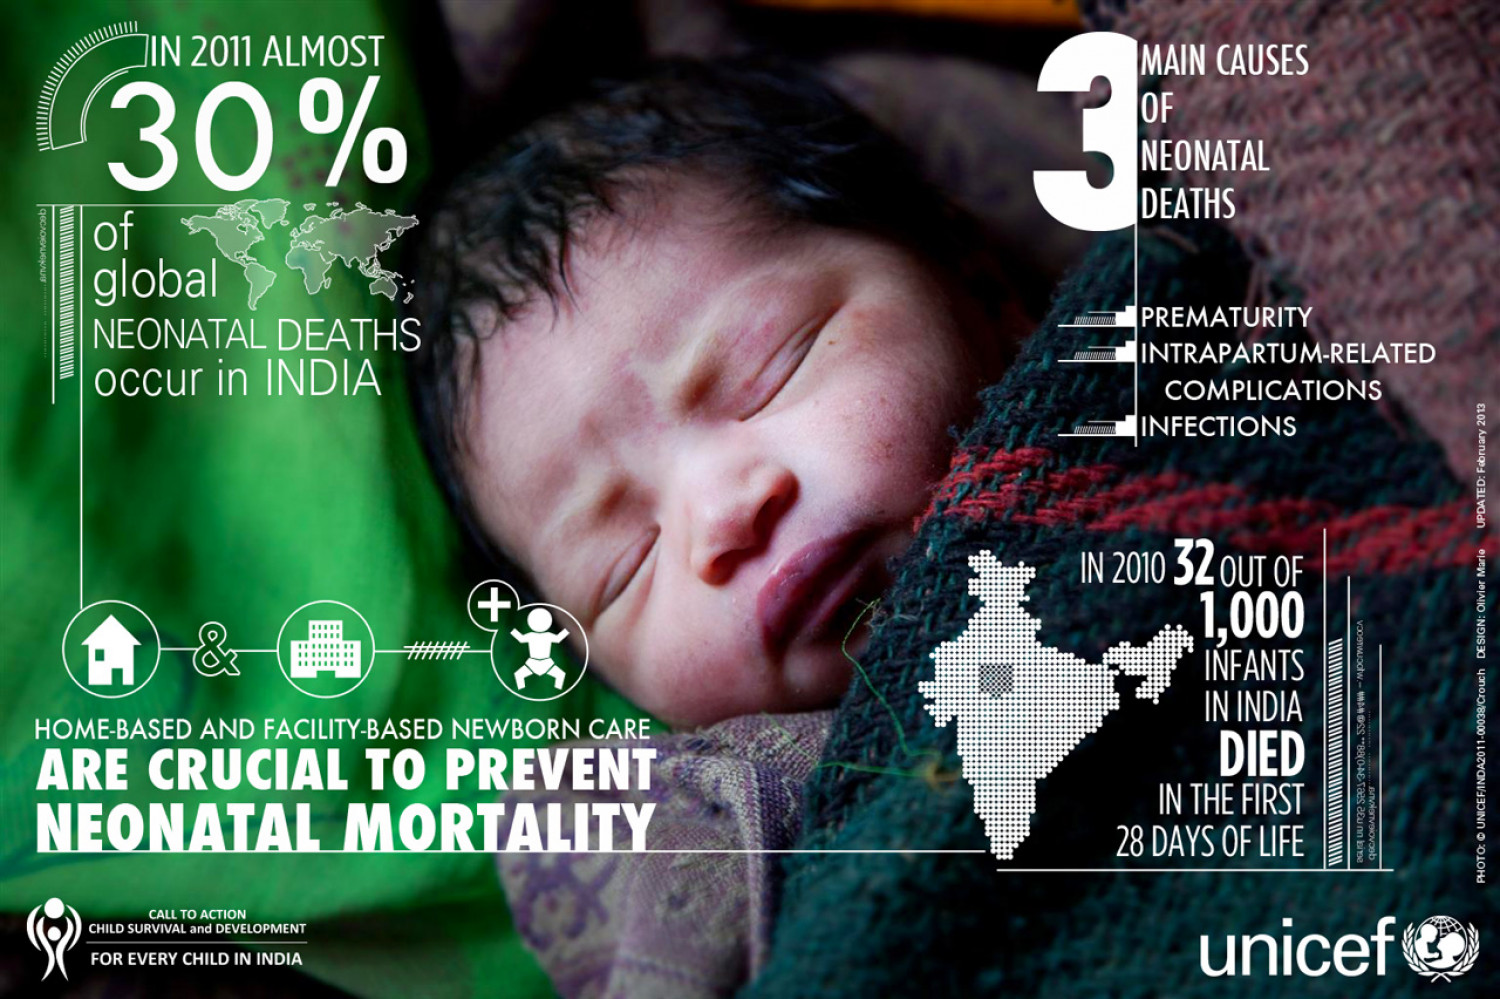 Neonatal Mortality - Child Survival & Development for every child in India Infographic